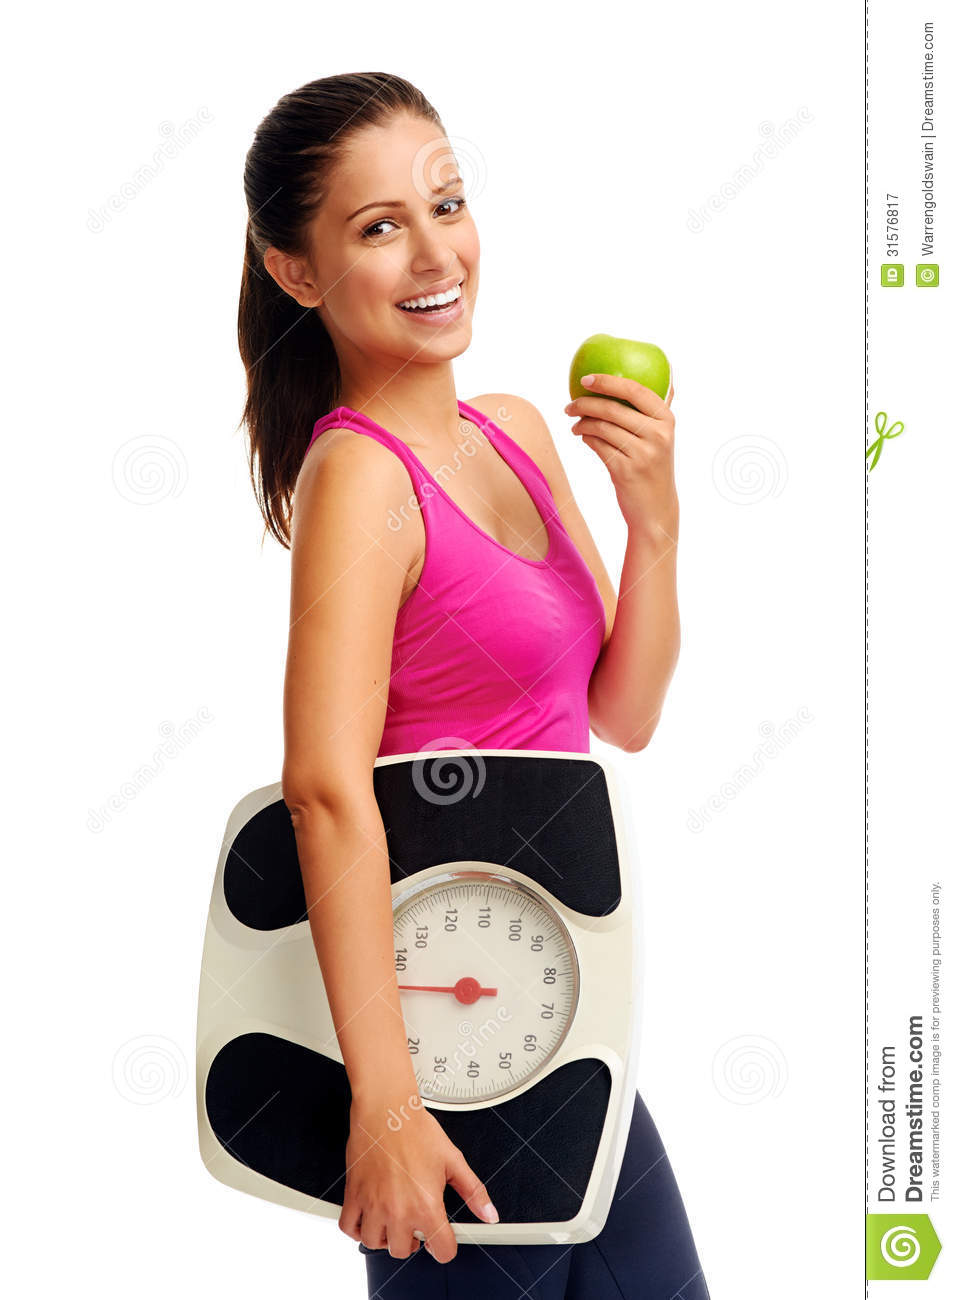 Health effects of weight loss